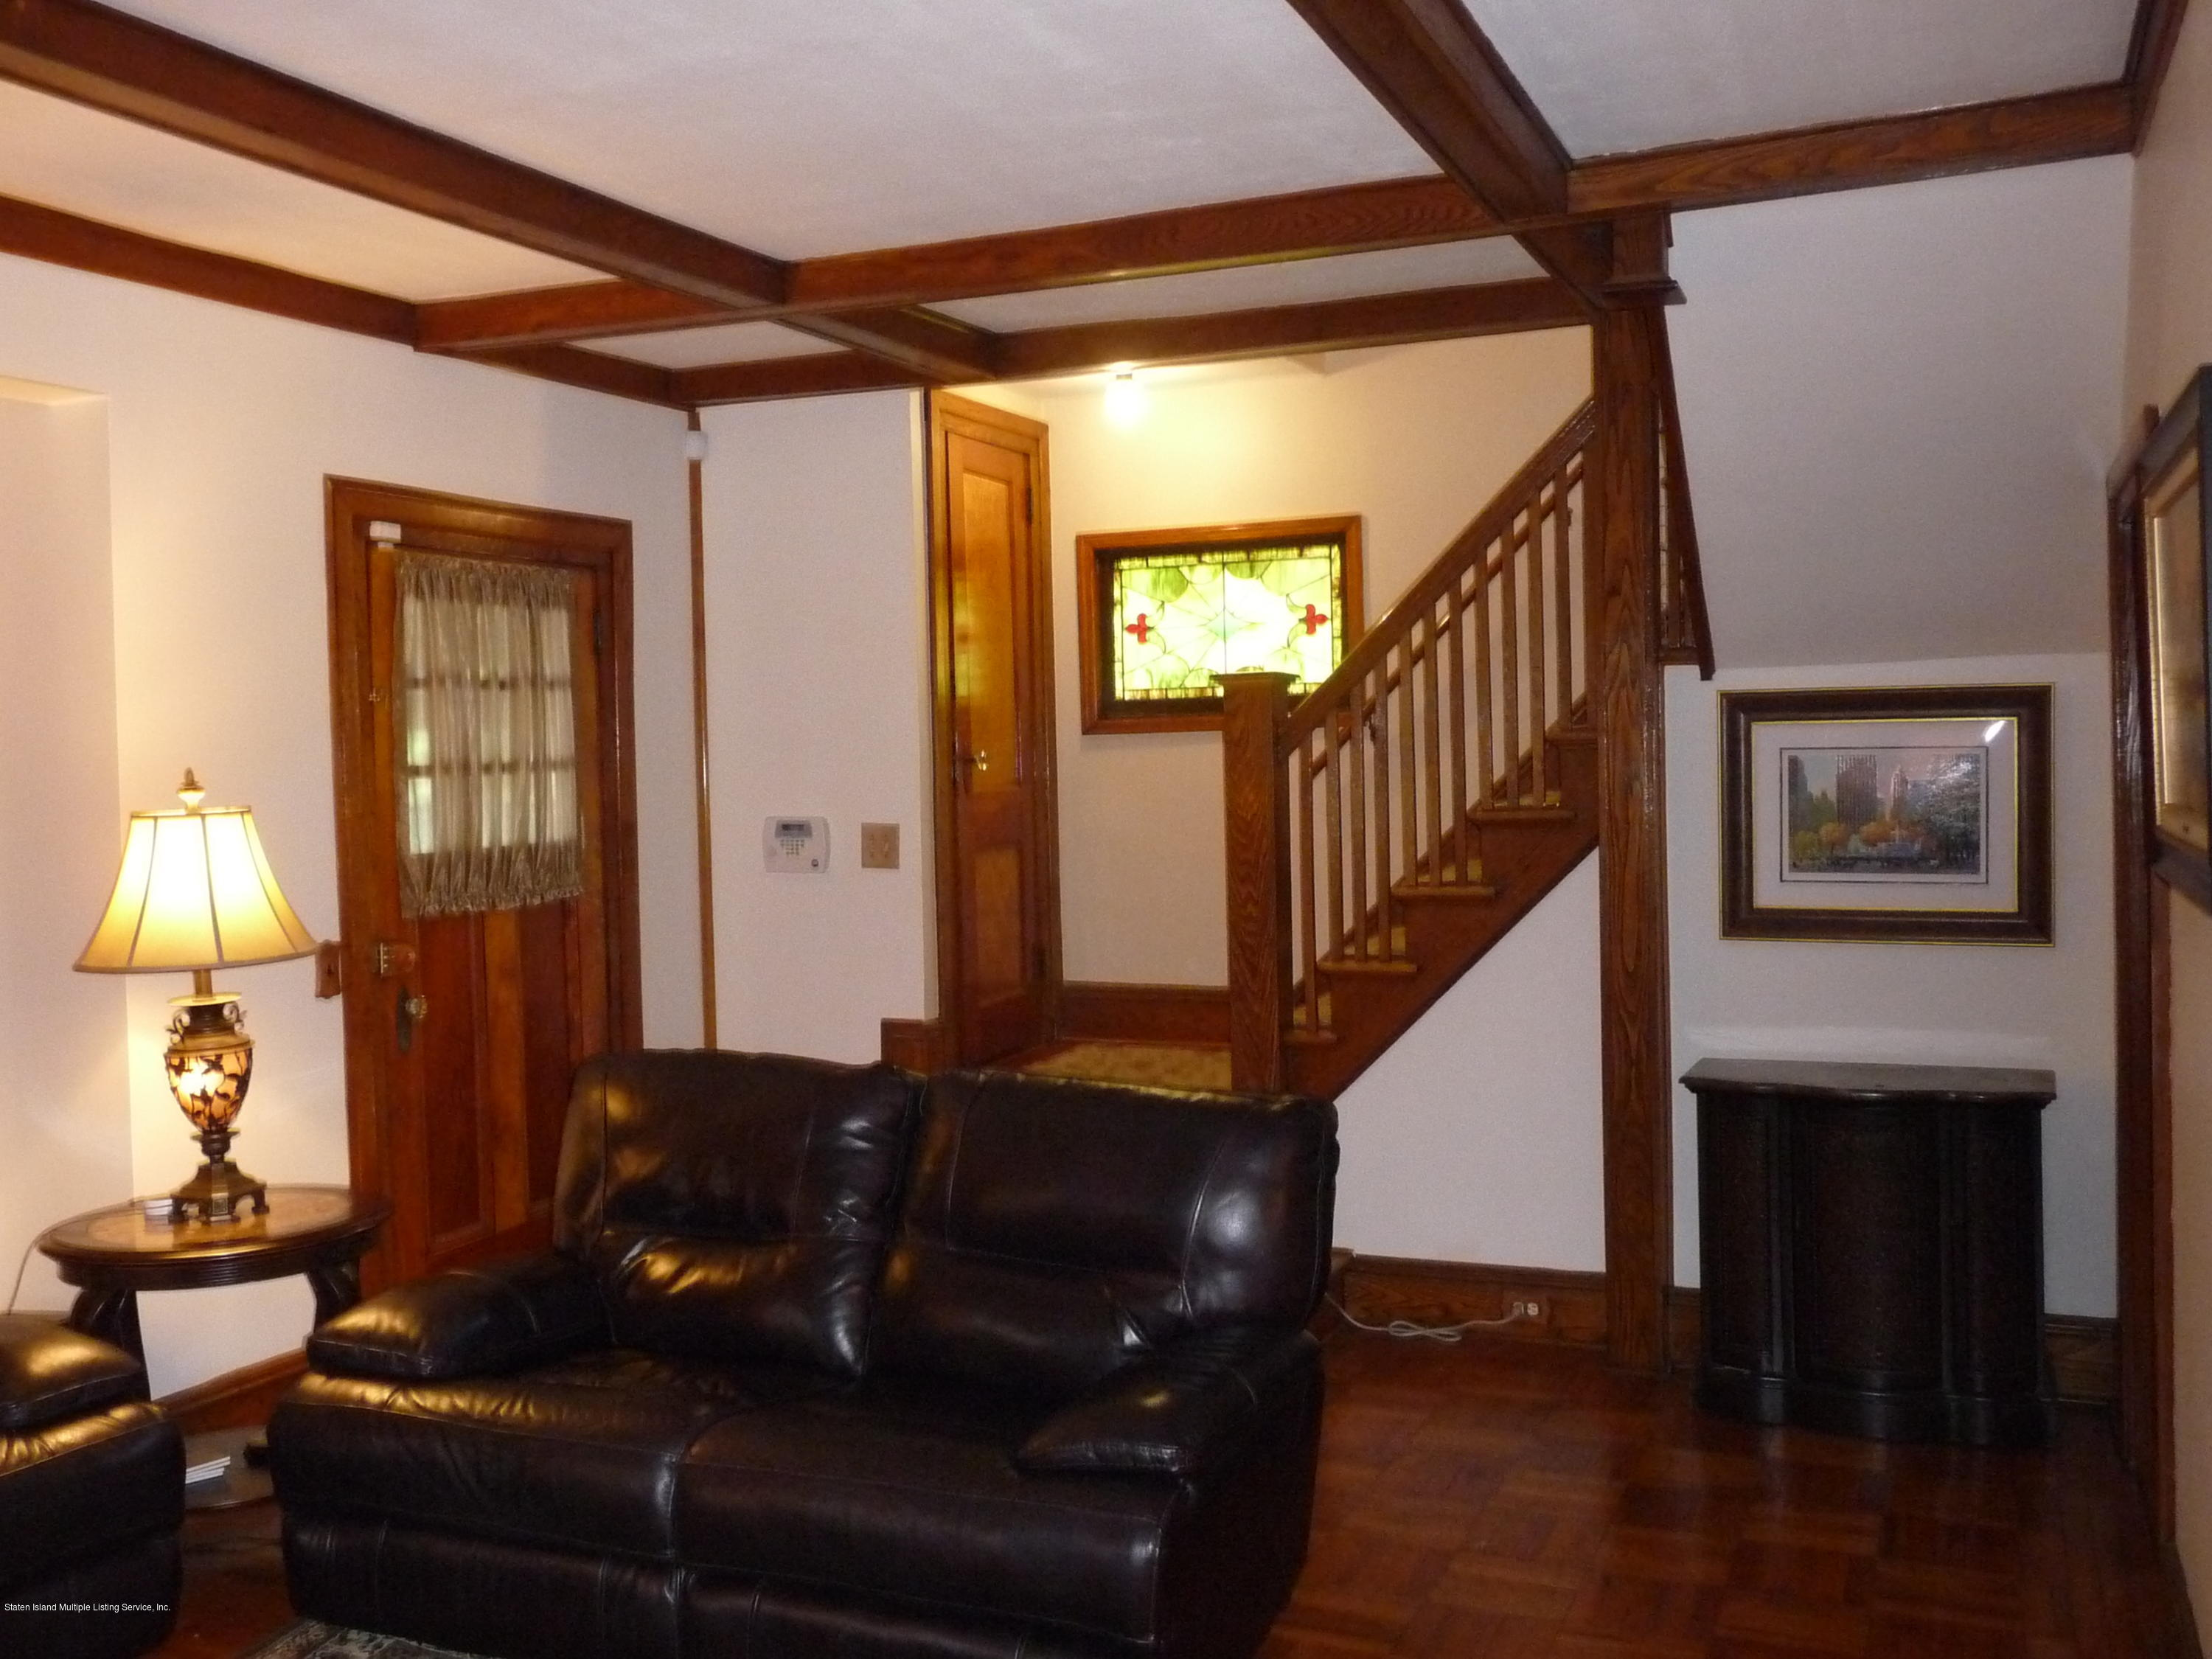 Single Family - Detached 77 Todt Hill Road  Staten Island, NY 10314, MLS-1129718-14